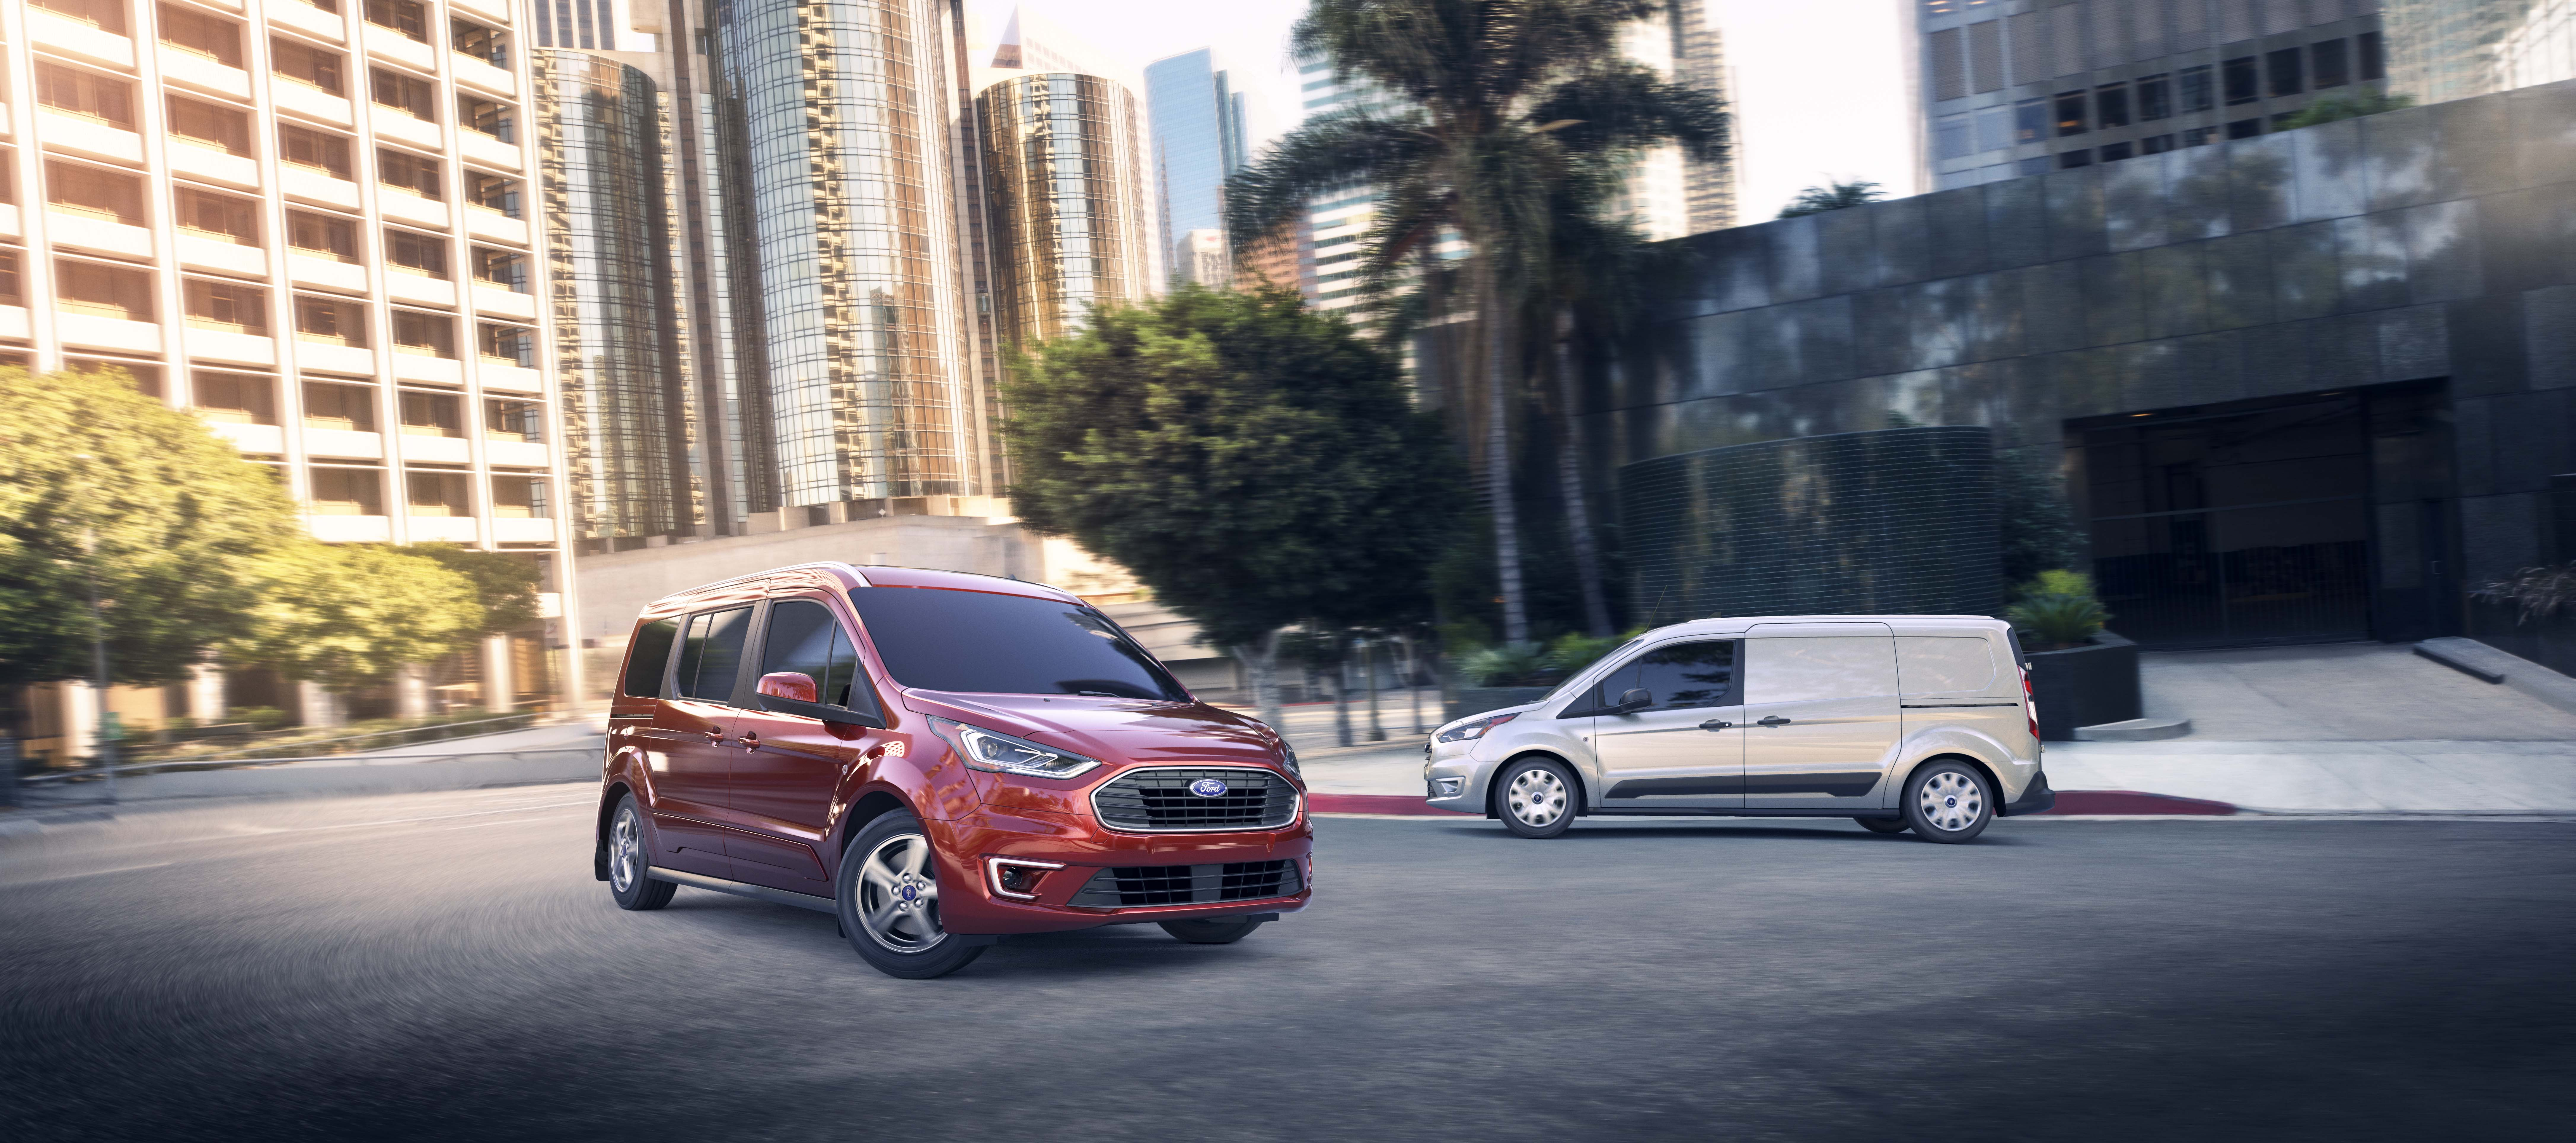 Ford Transit Connects available in Elizabethtown, KY at Oxmoor Ford Lincoln